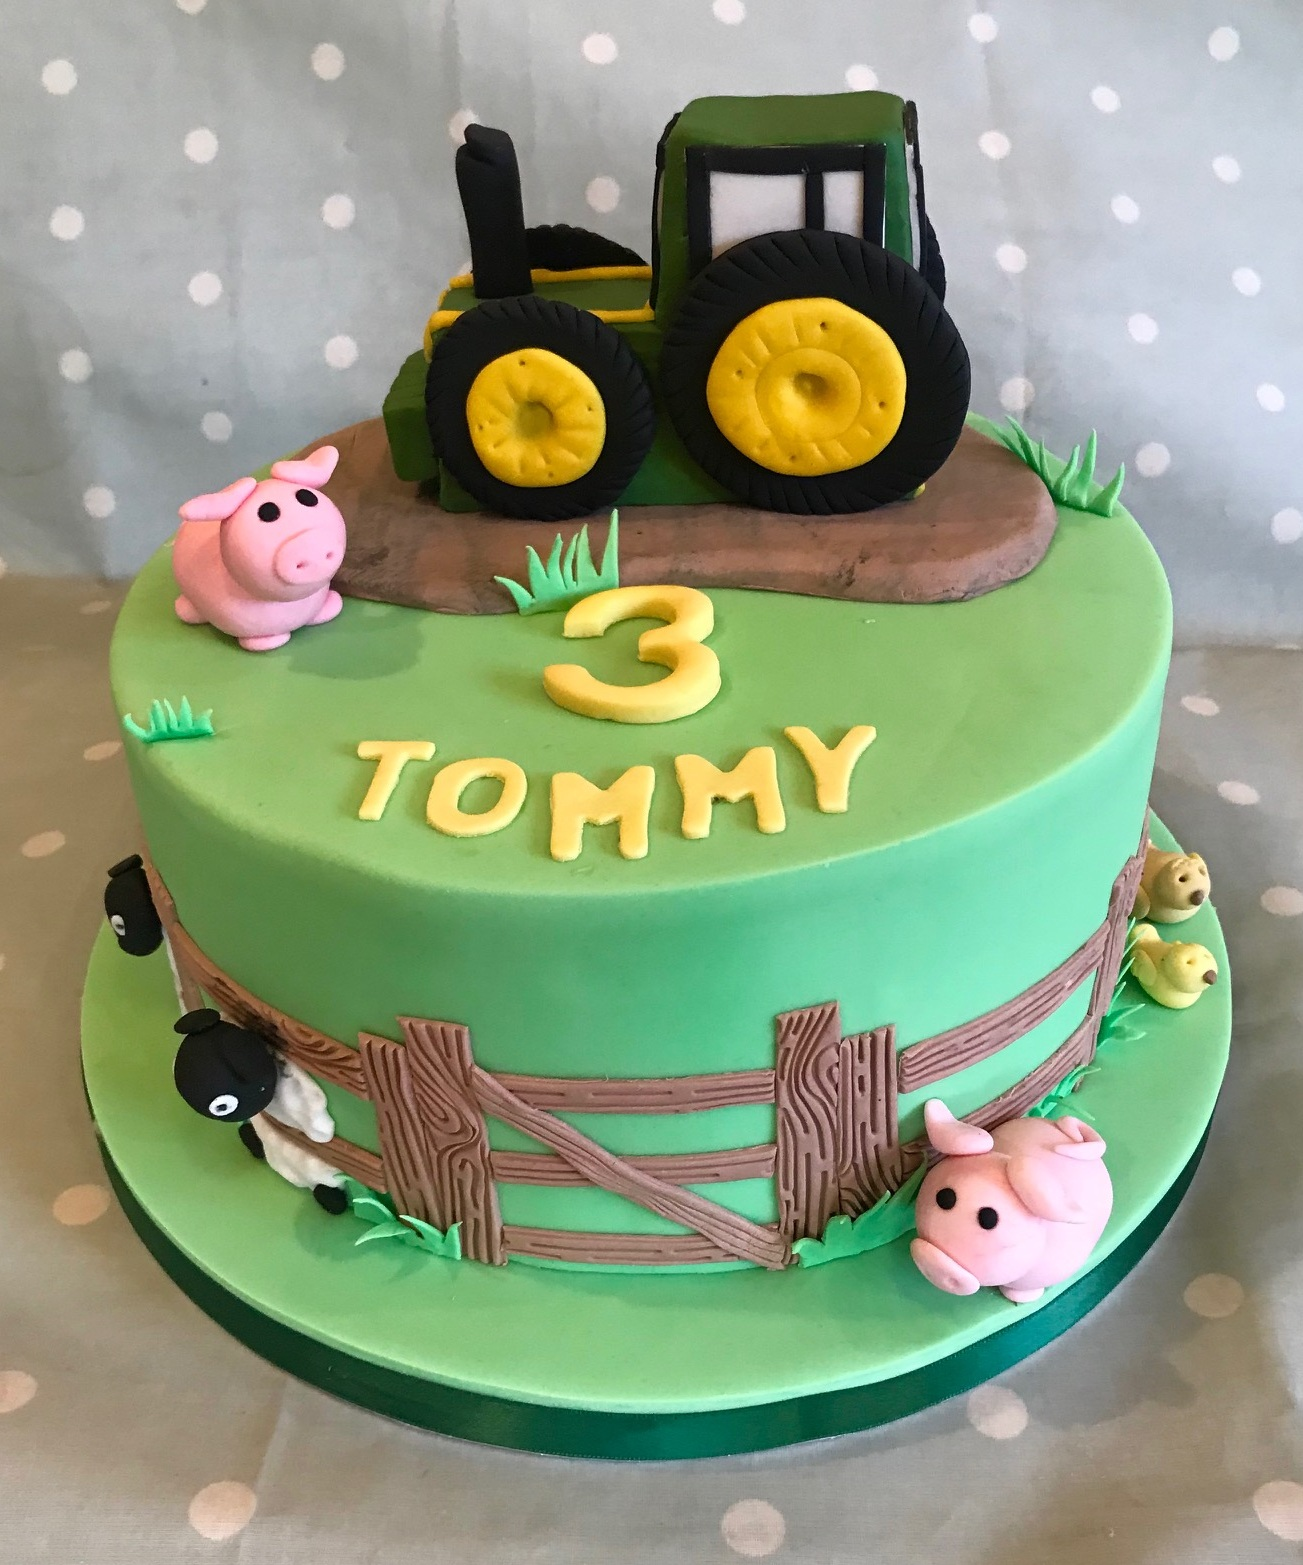 Tractor cake for Tommy, Herefordshire